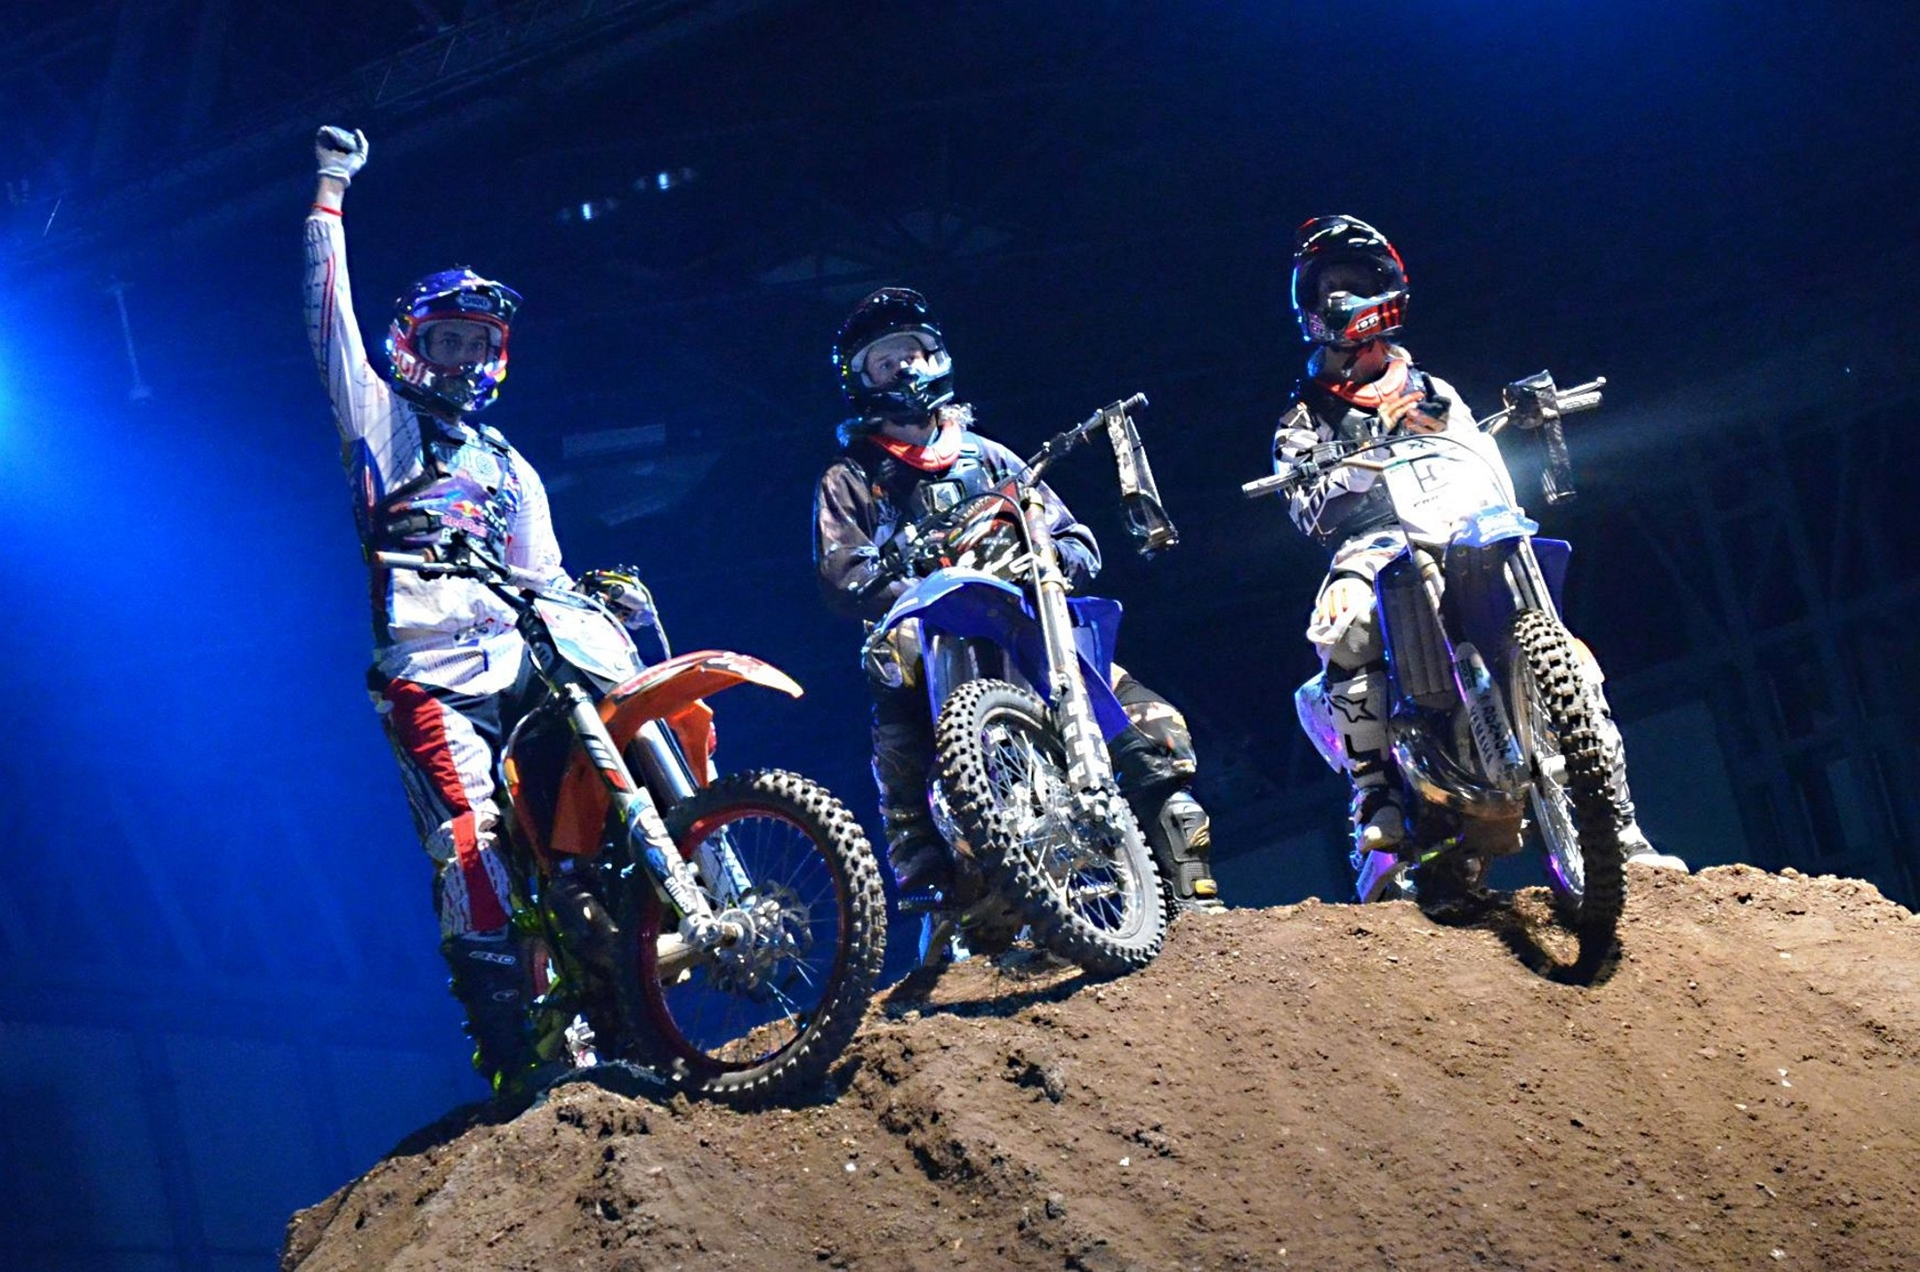 Motorcycle live 2012